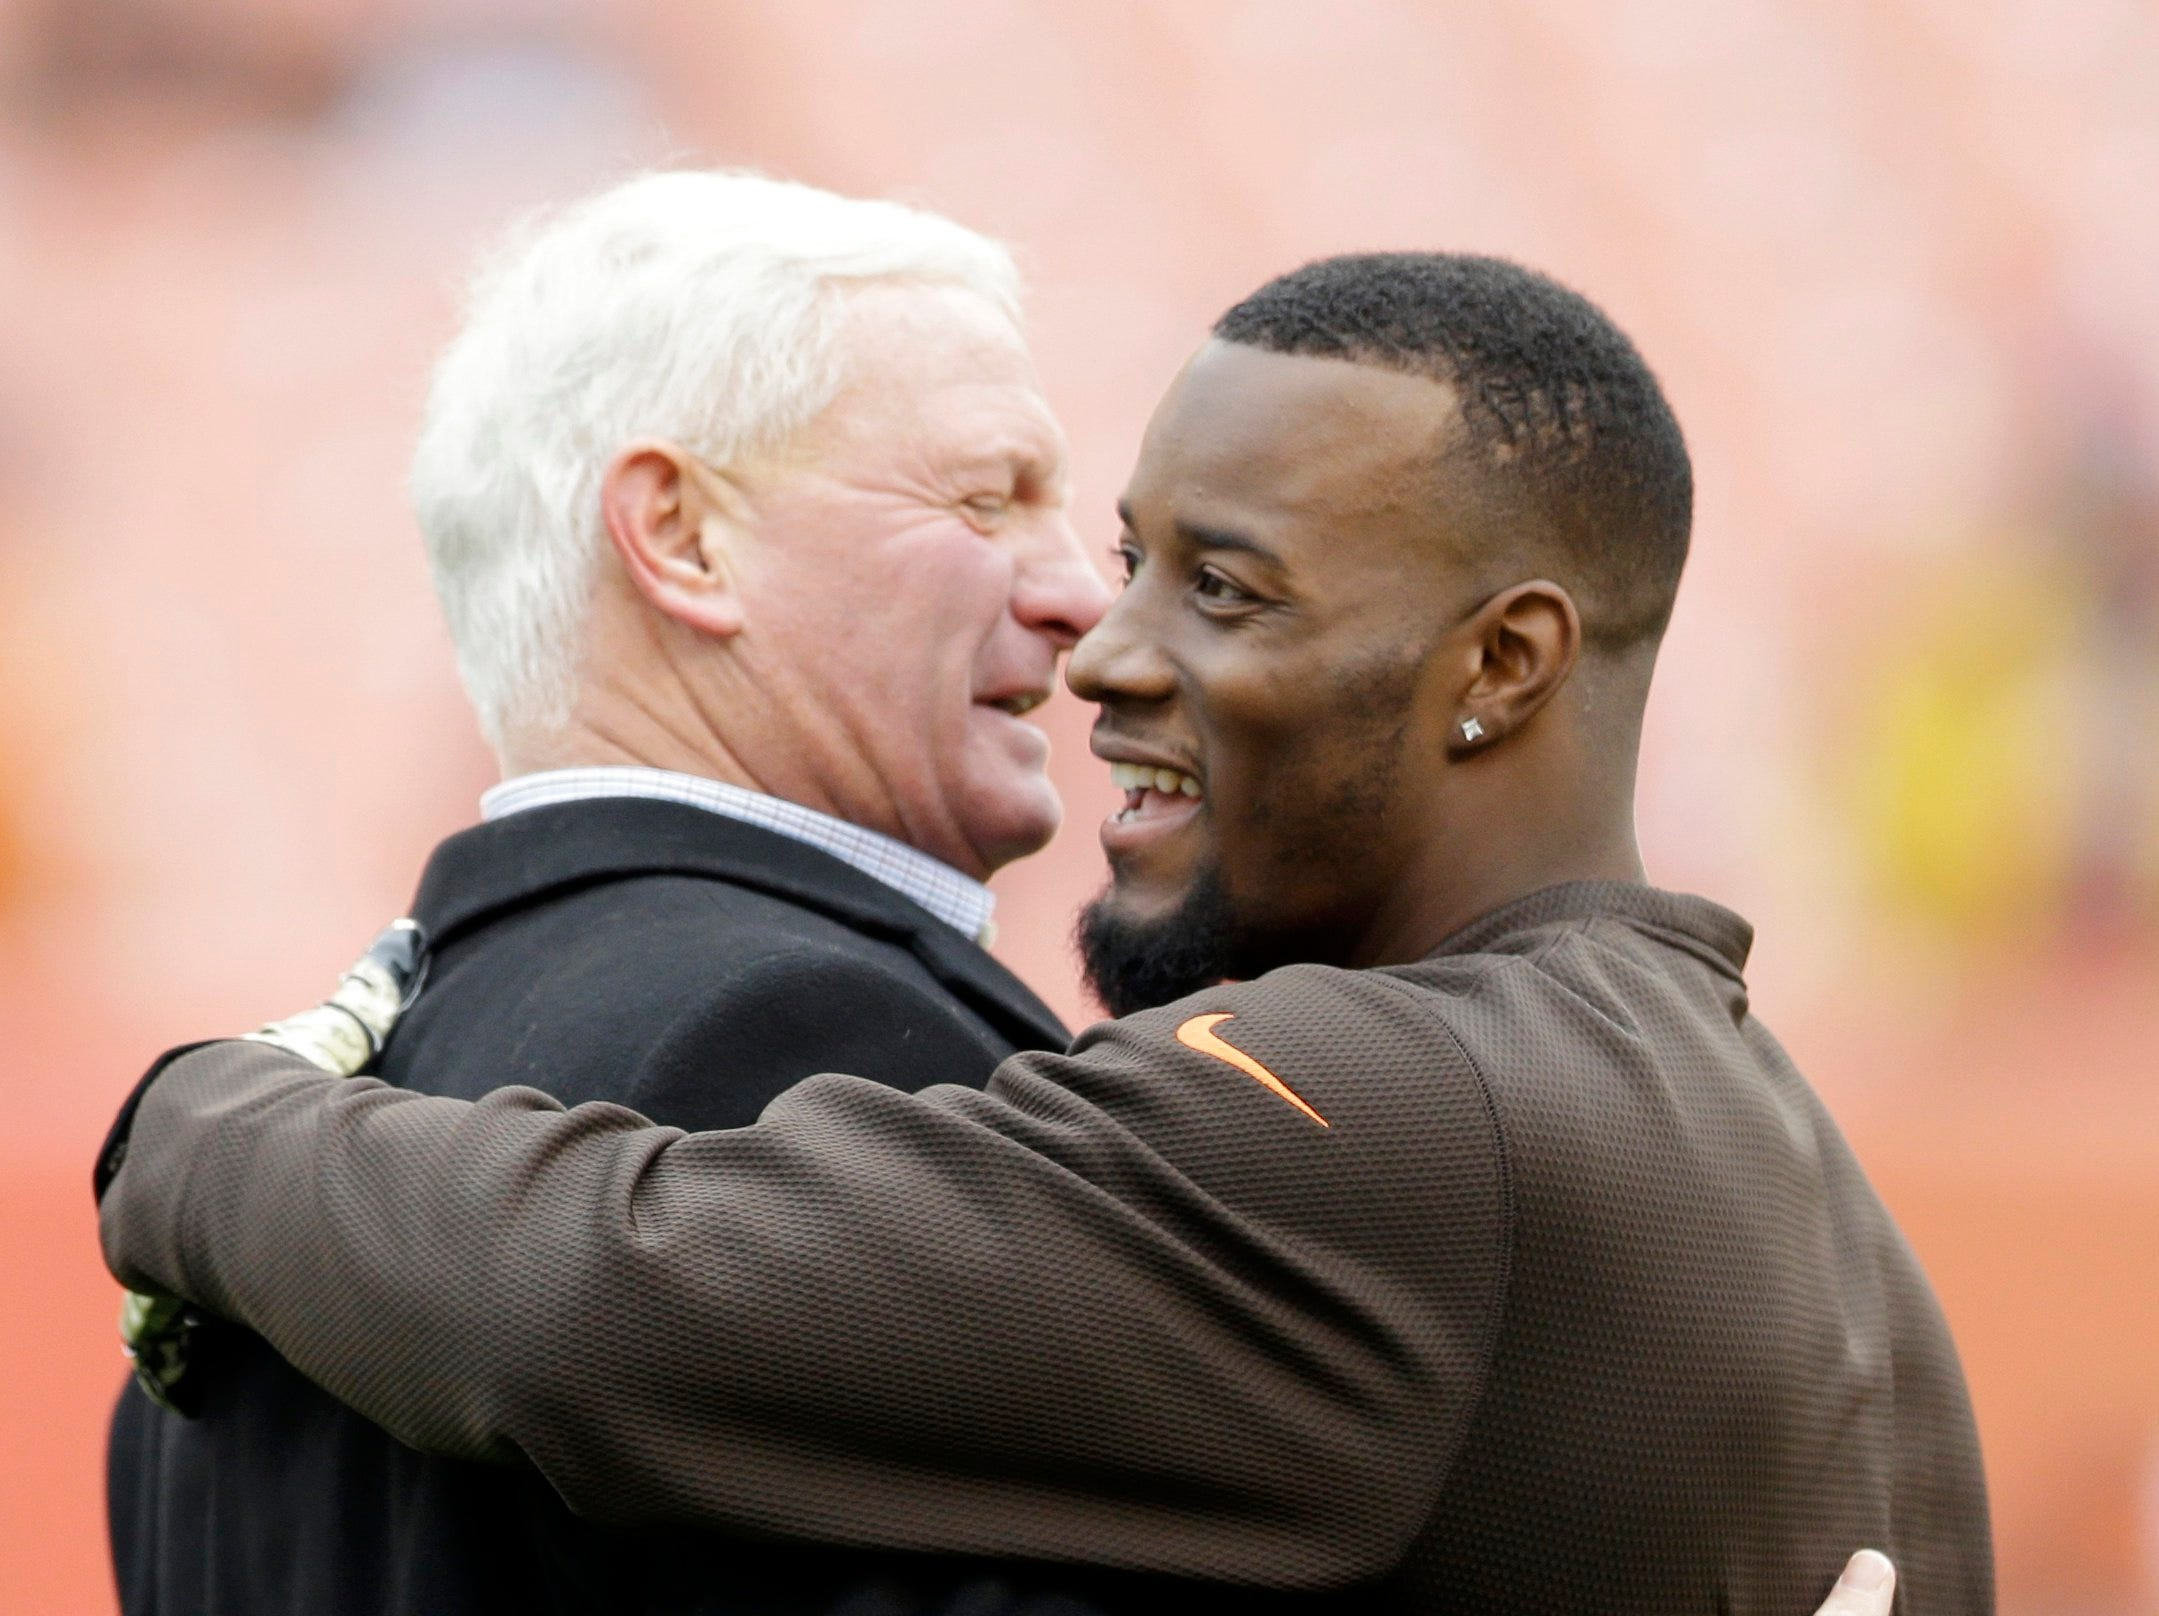 Cleveland Browns owner Jimmy Haslam, left, greets Cleveland Browns free safety Tashaun Gipson before an NFL football game against the Houston Texans Sunday, Nov. 16, 2014, in Cleveland.